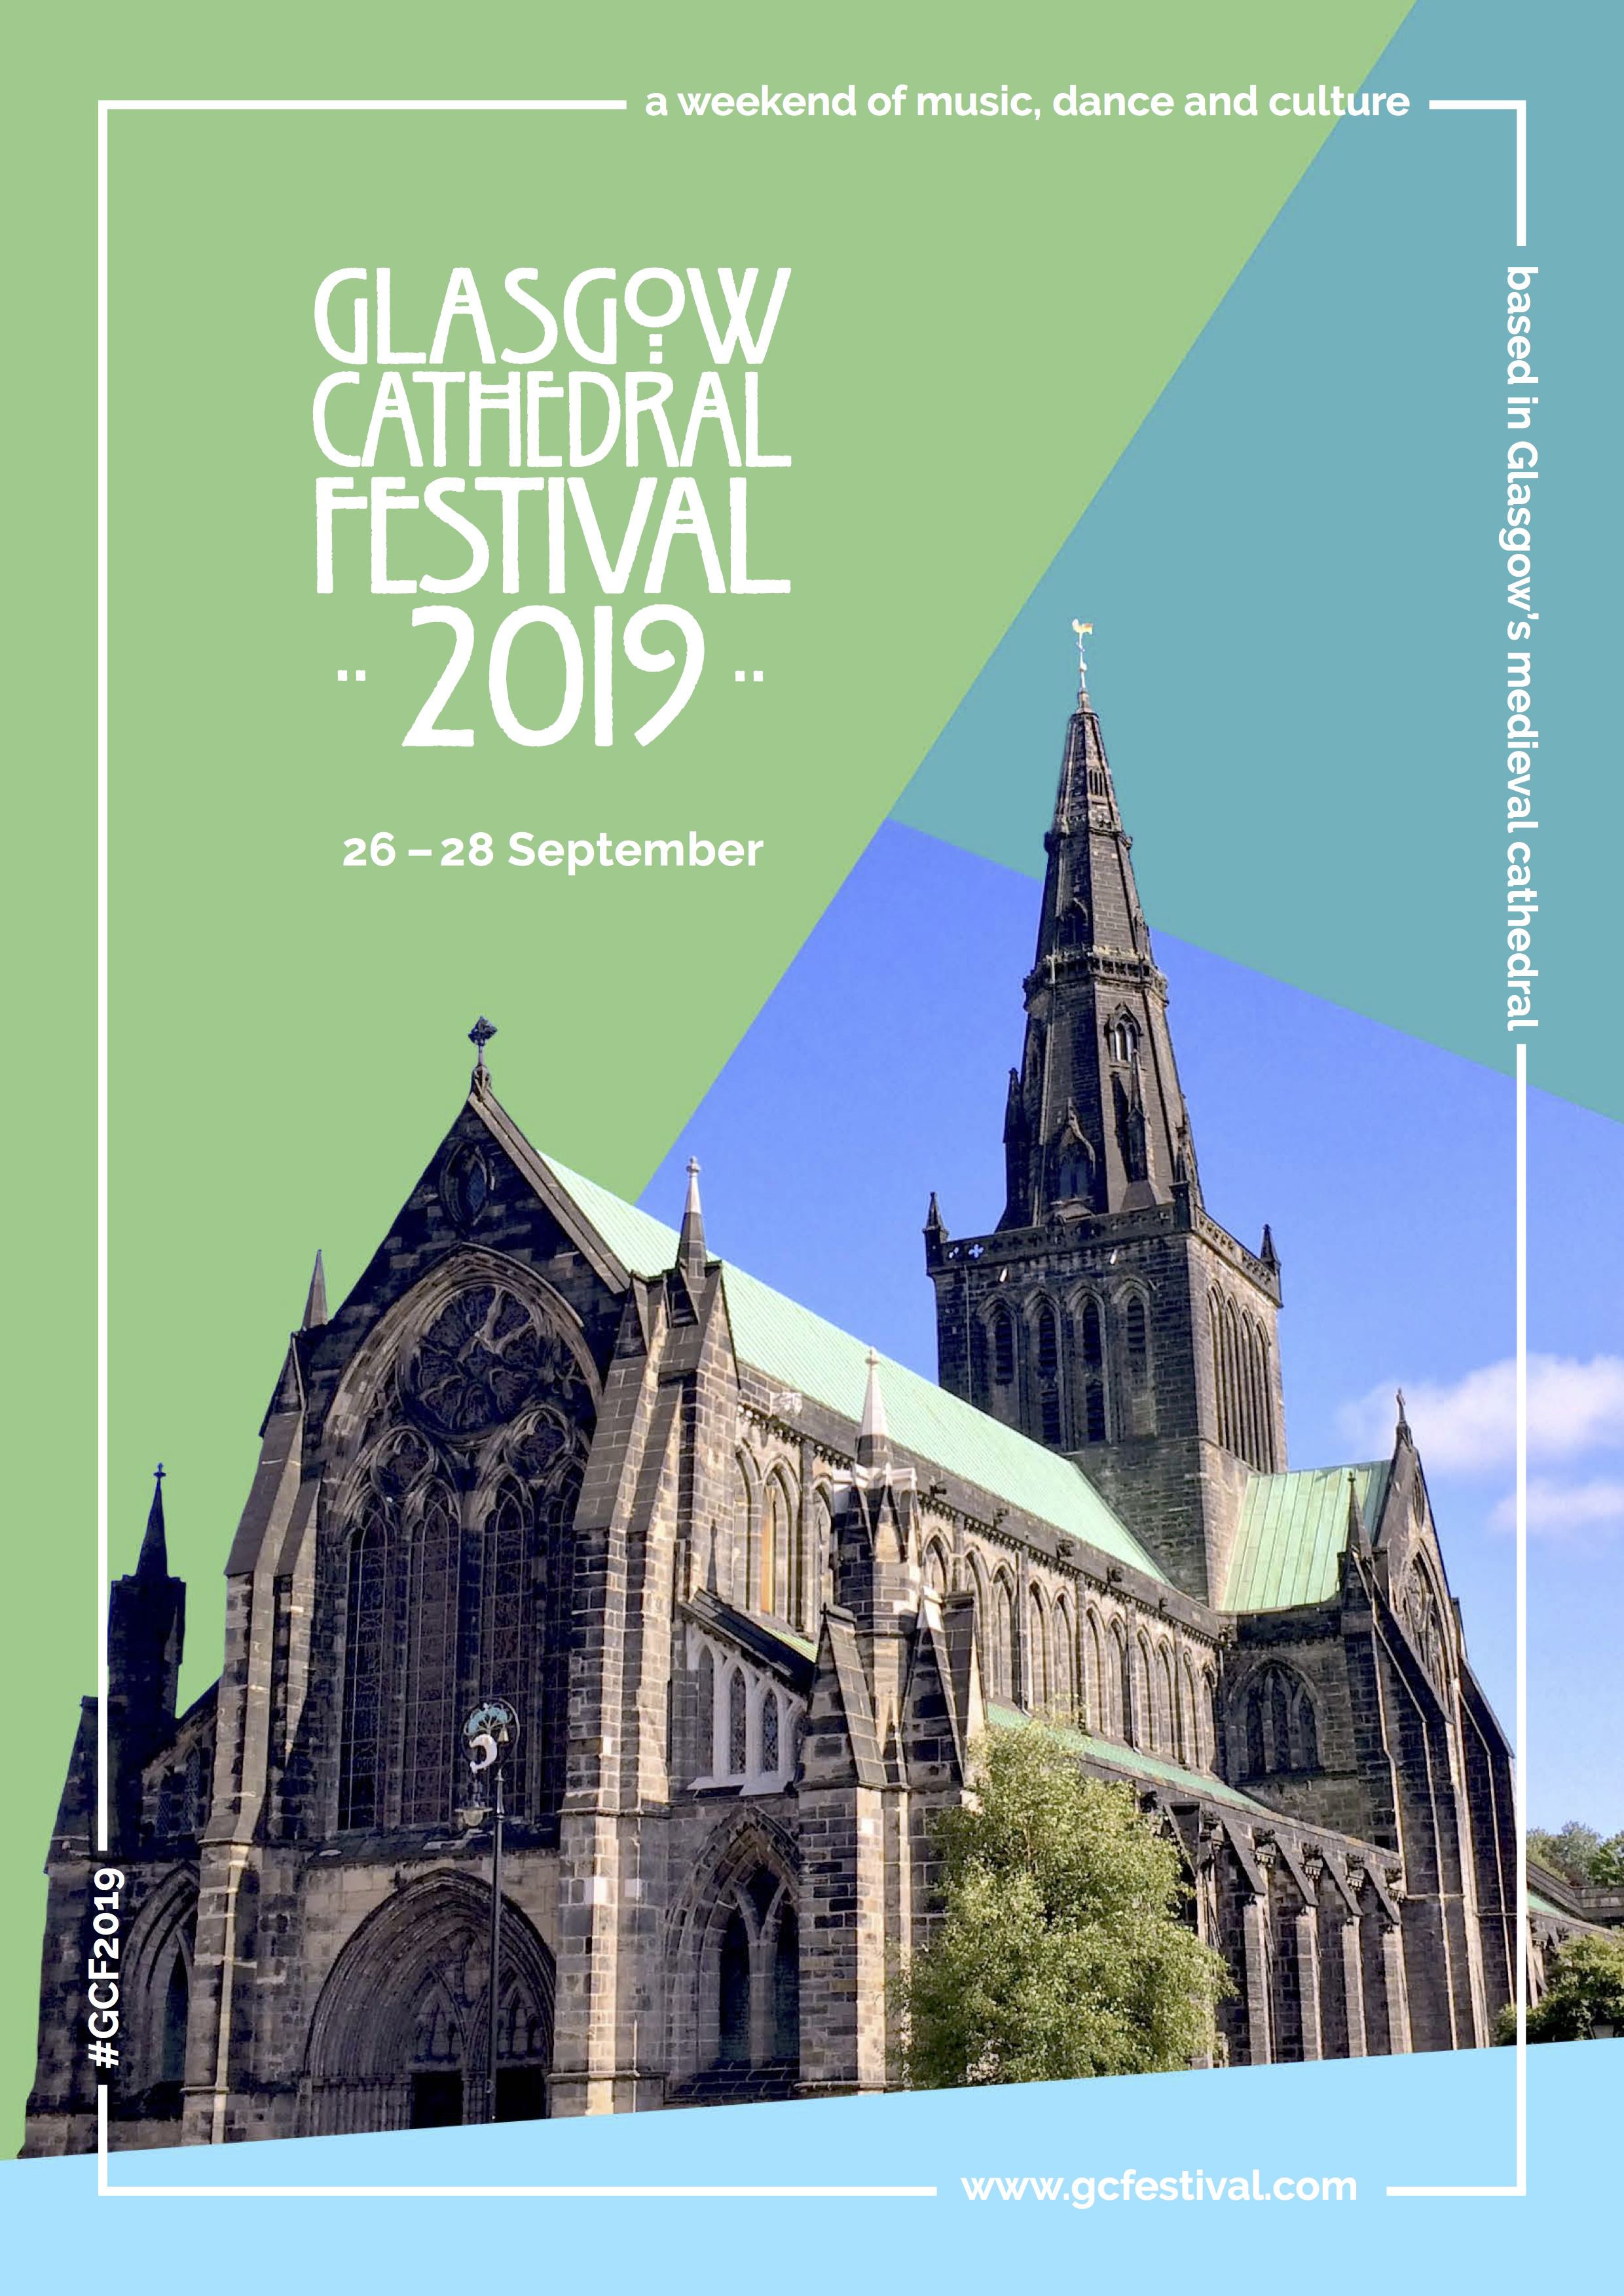 Glasgow Cathedral Festival 2019